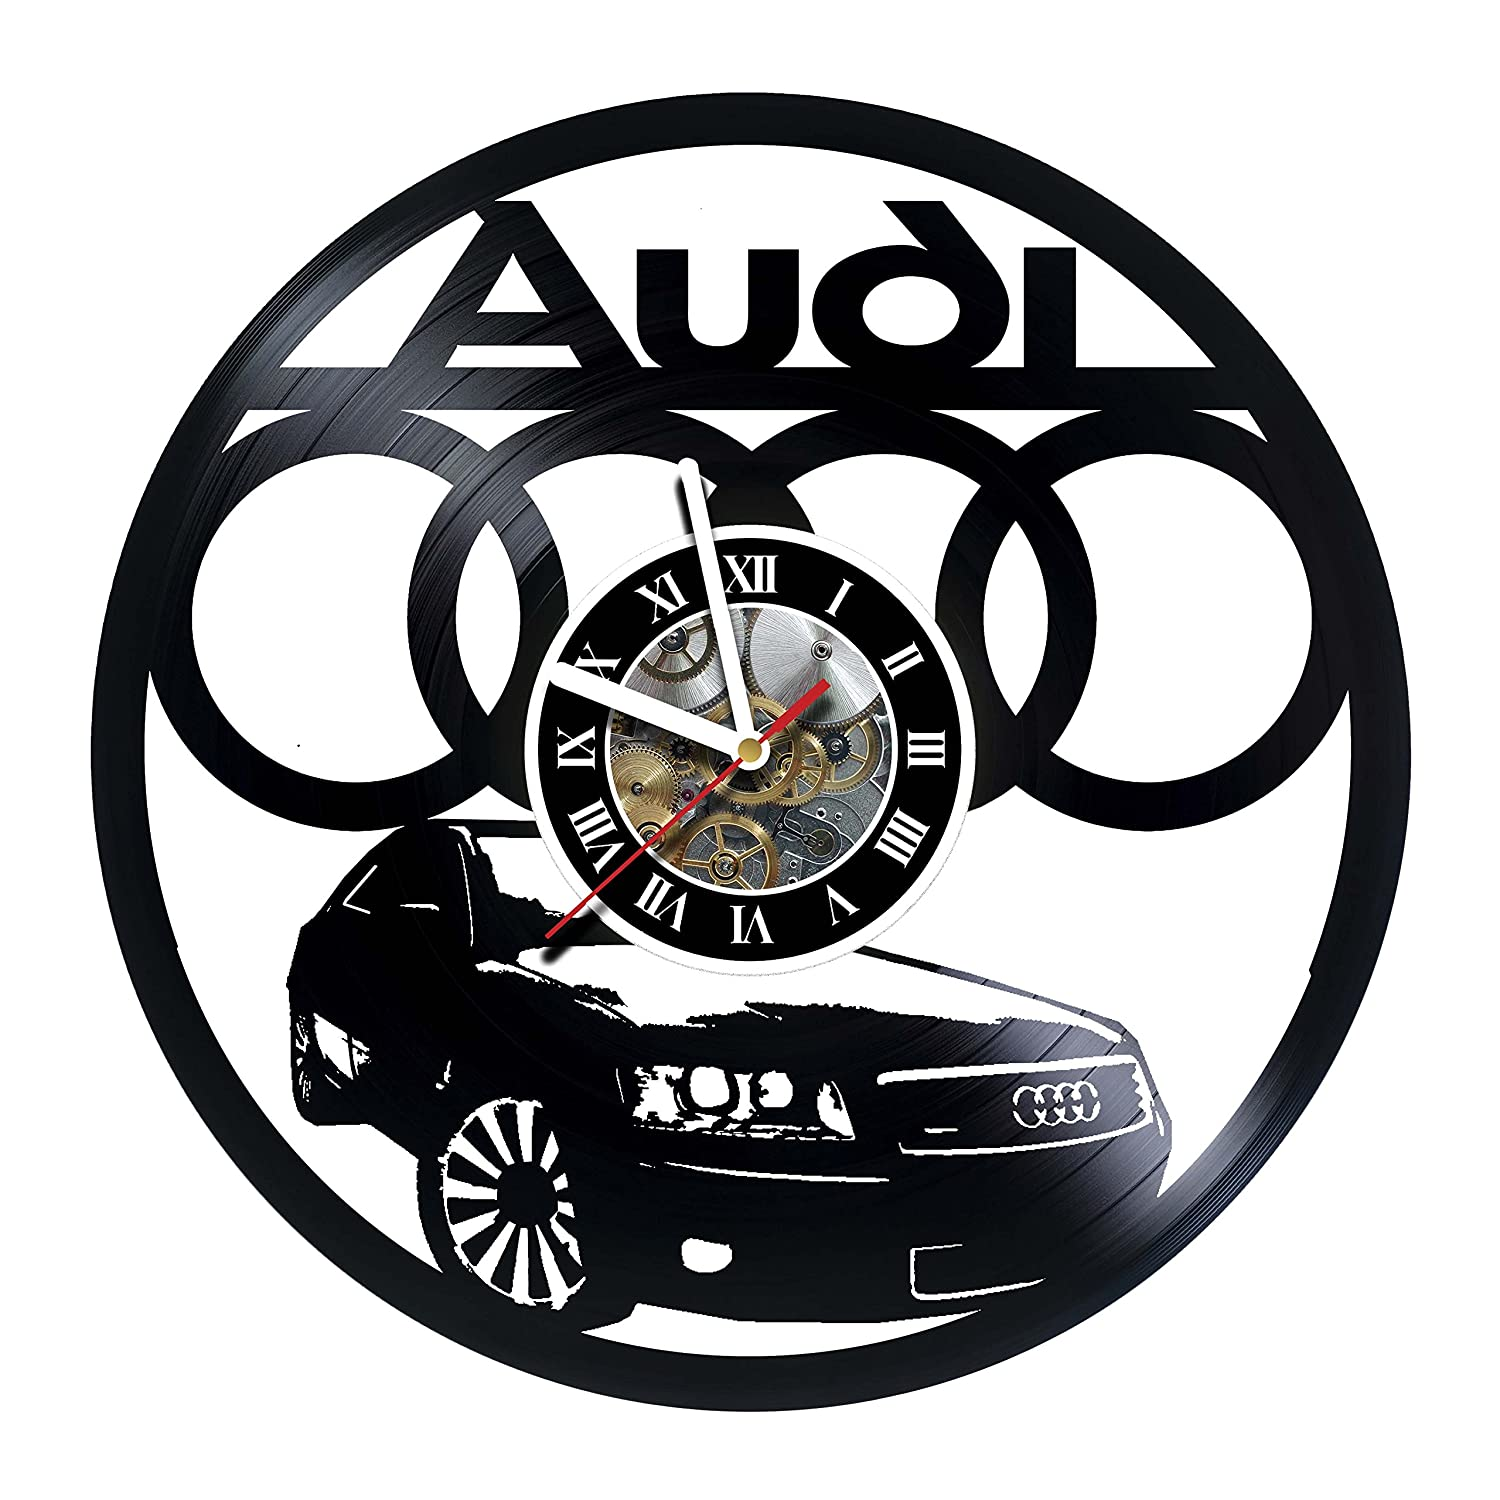 women Wall Clock Made of Vinyl Record AUTOMOBILE AUDI men Handmade Unique Original Art Design anniversary friends girlfriend boyfriend and teens wedding Great gifts idea for birthday